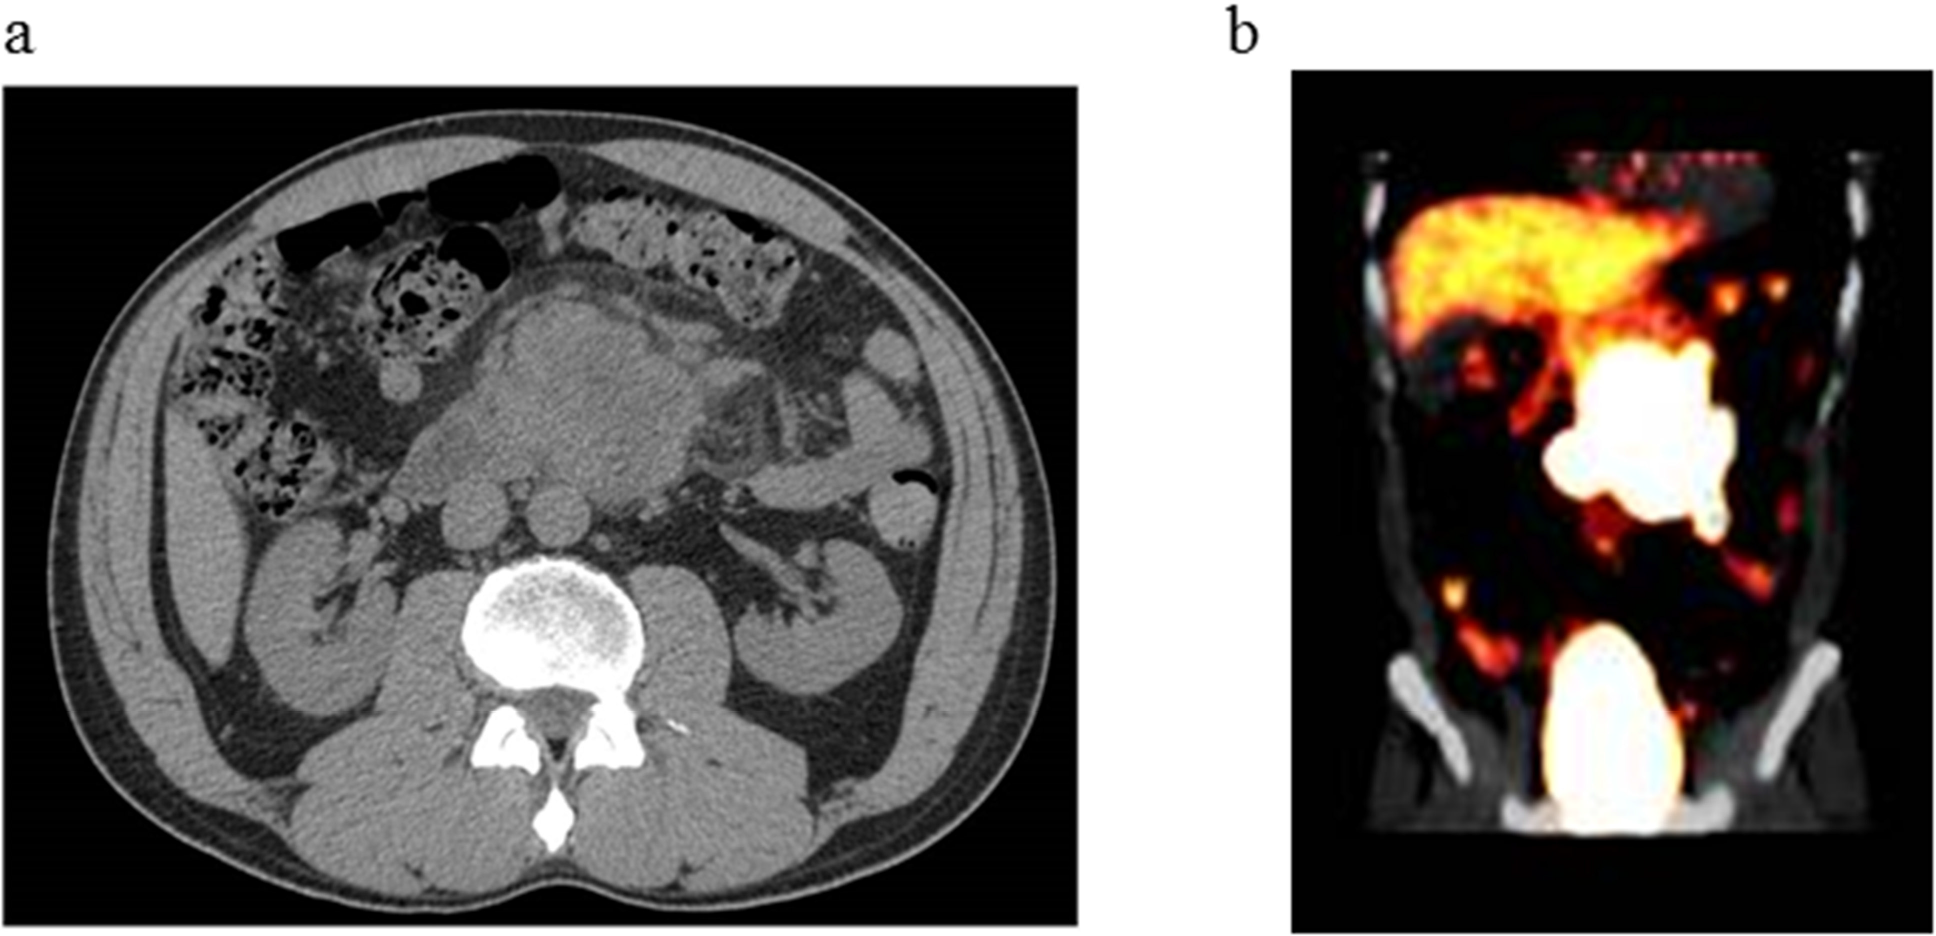 Radiological images of abdominal tumor.